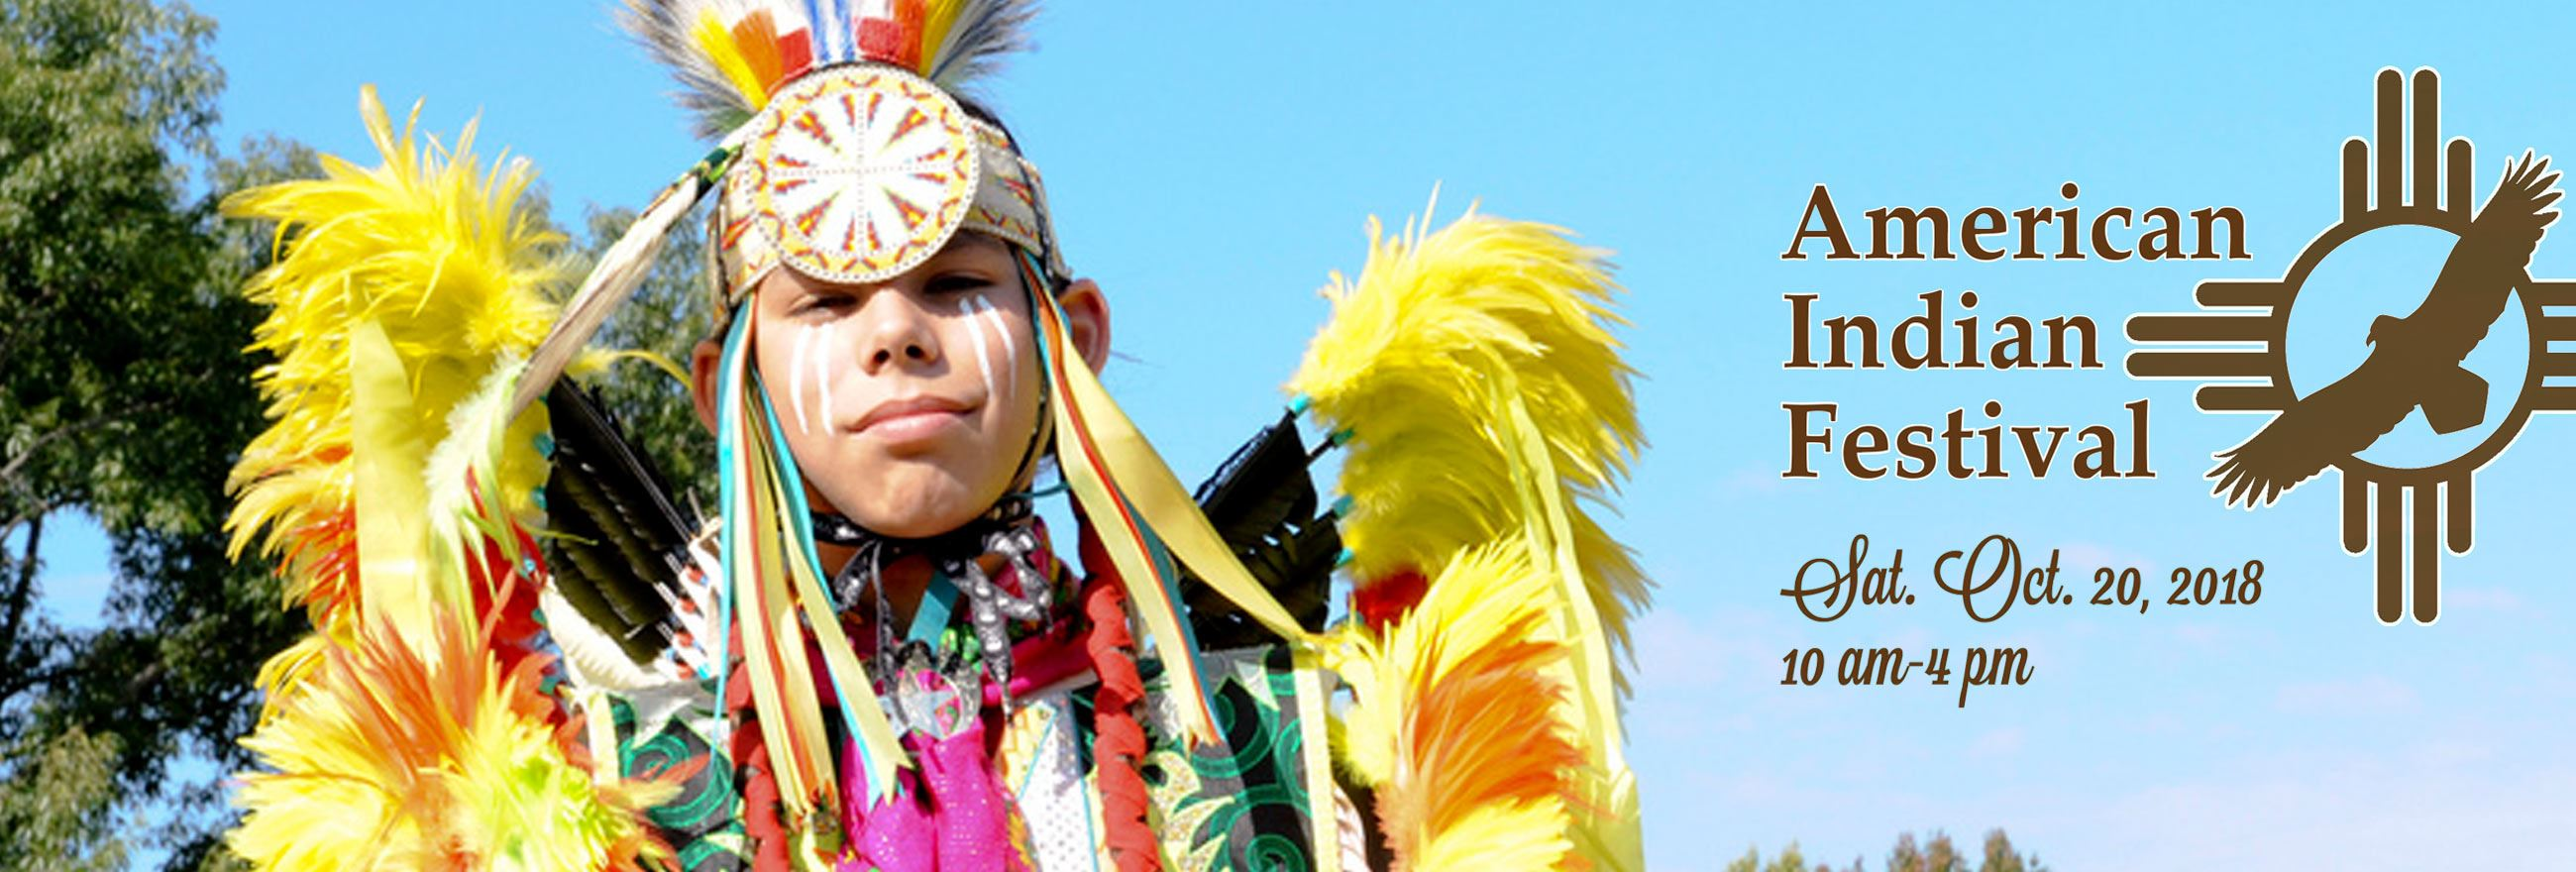 10th Annual American Indian Festival is October 20